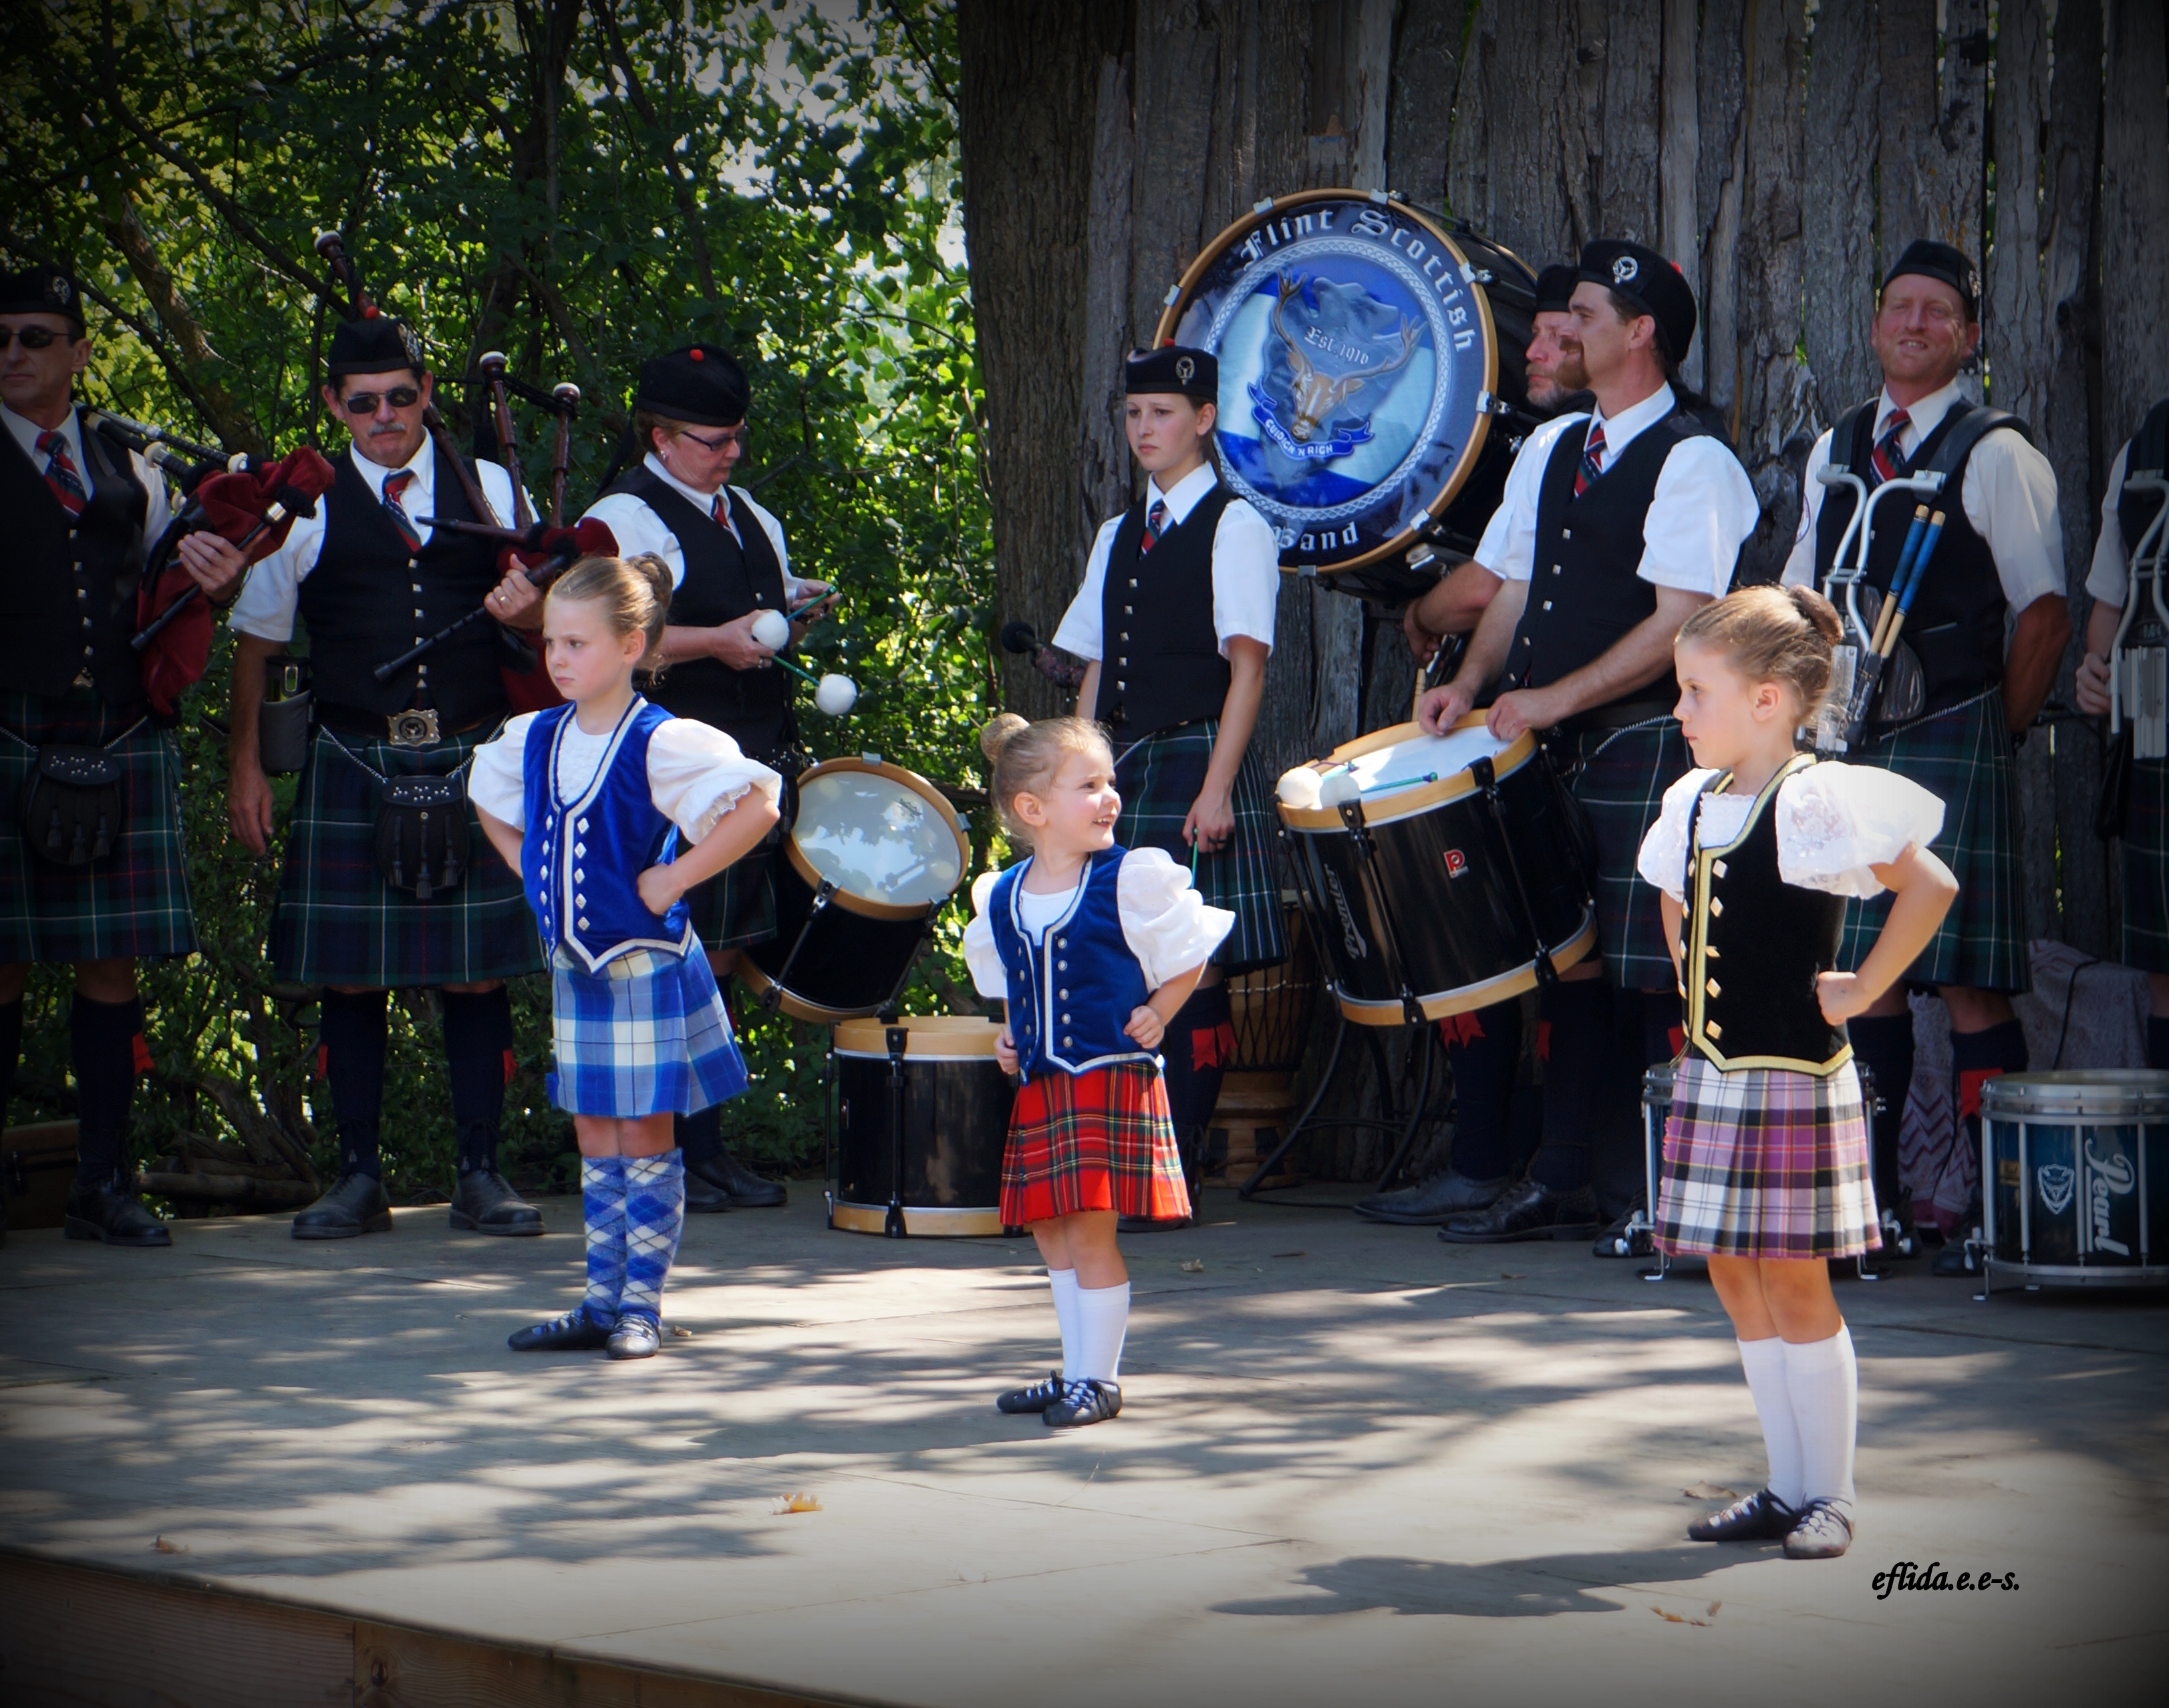 Girls in kilts dancing to the music of scottish bagpipes and drums at